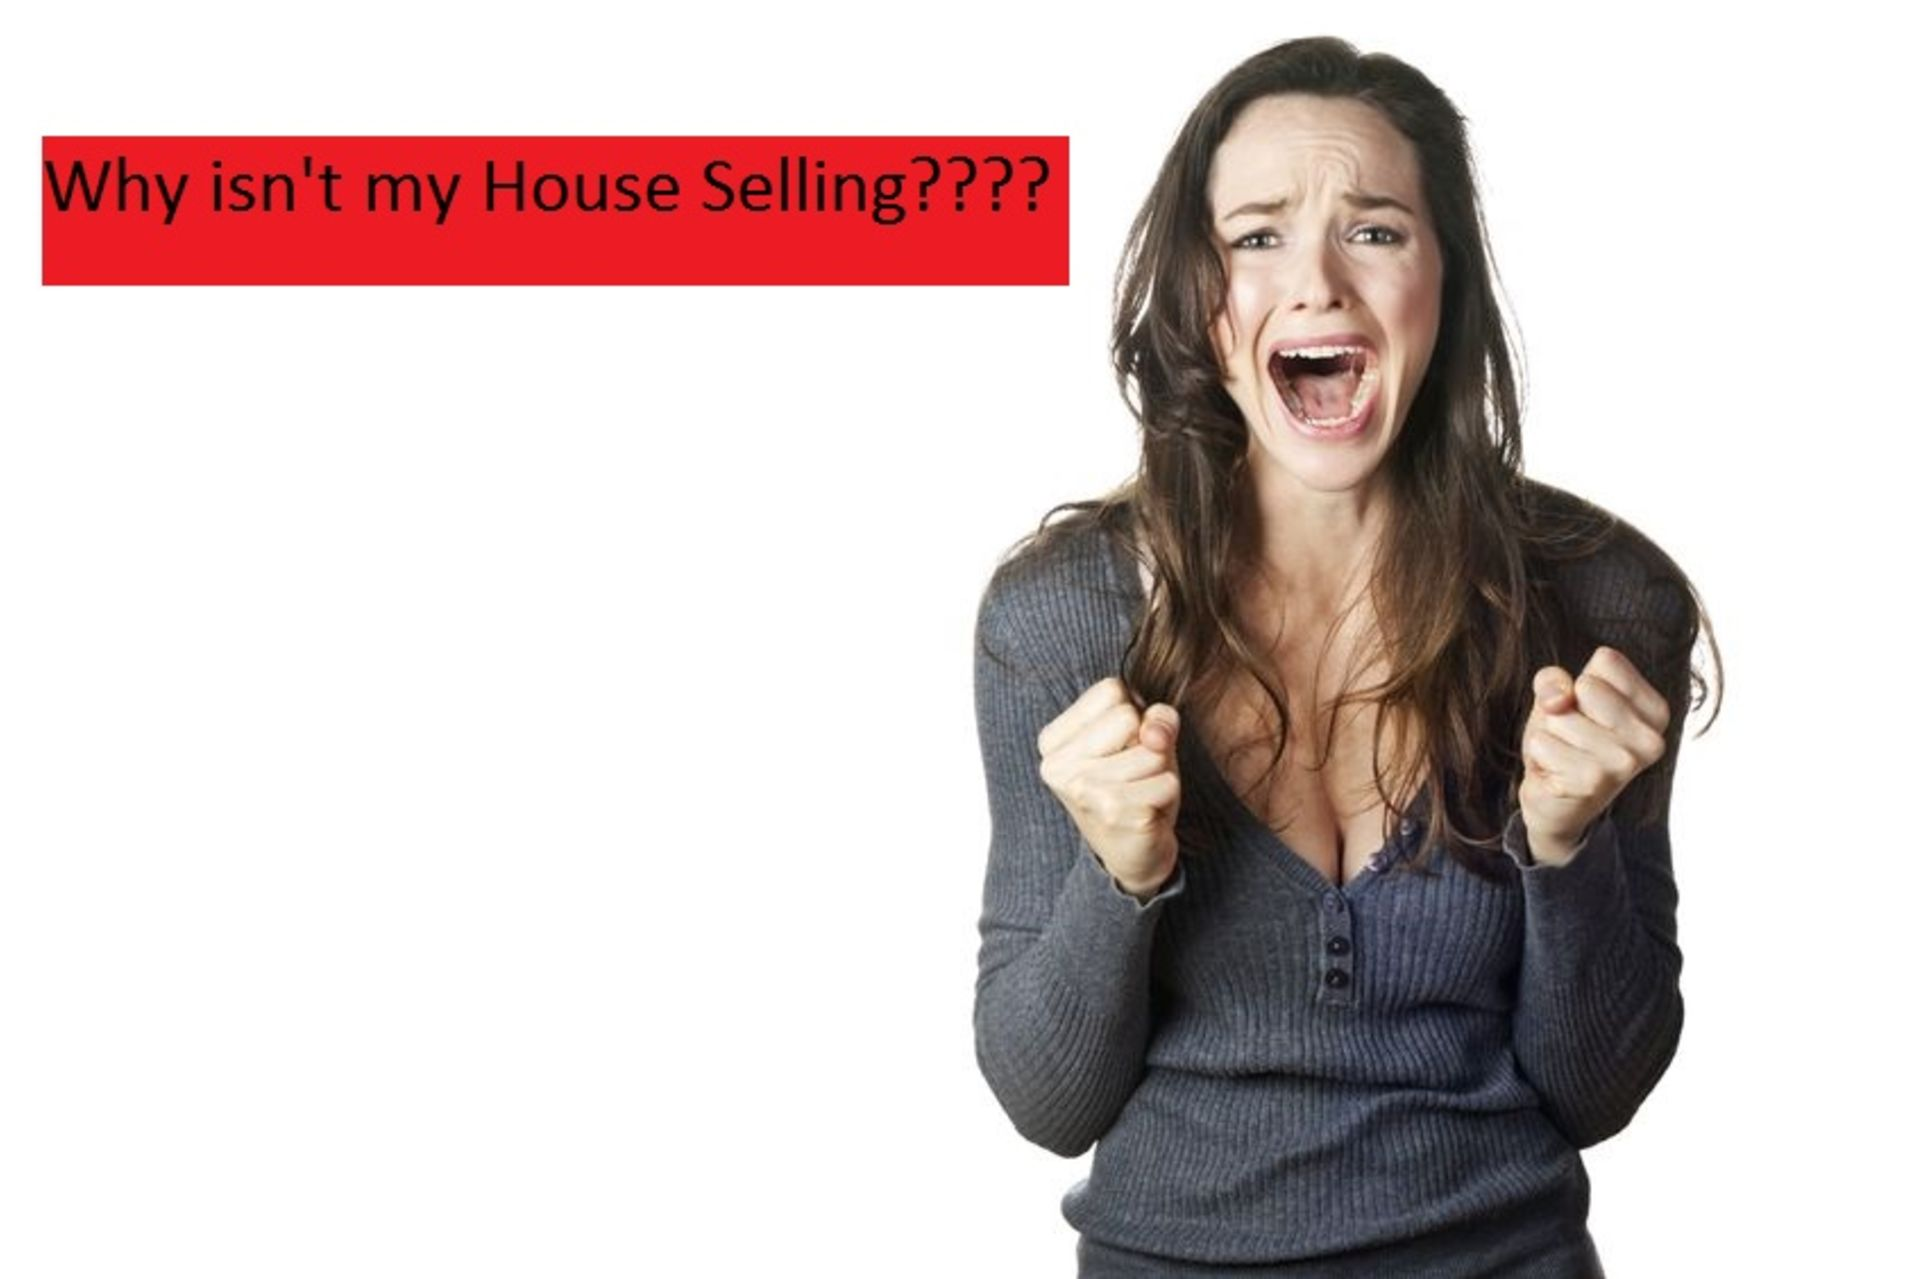 Why isn't my house selling?